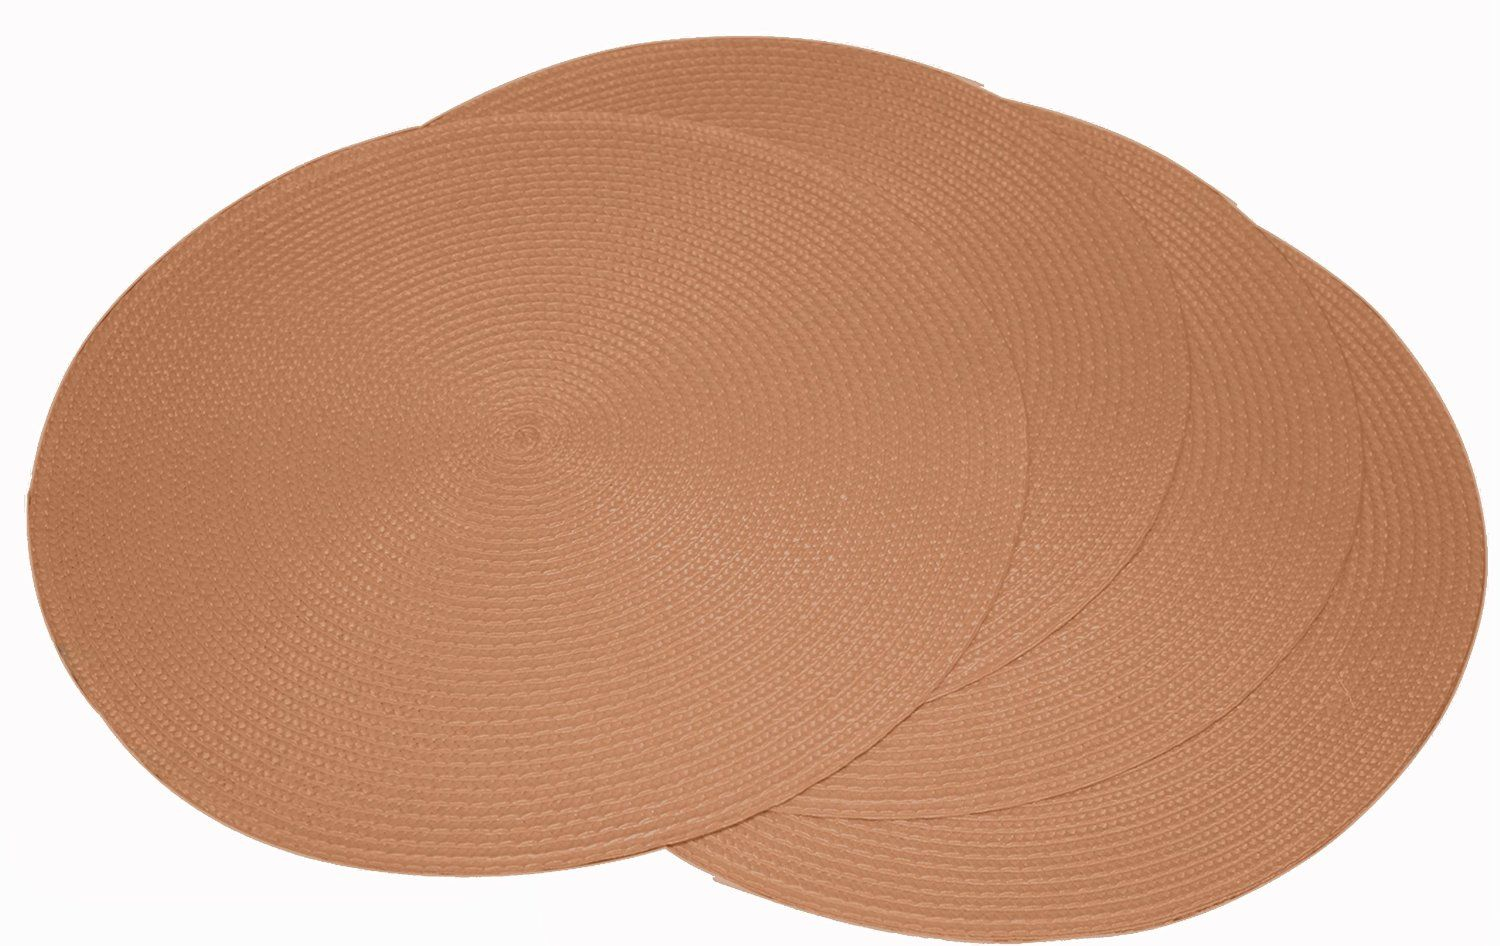 "Fine Woven Round Placemats, 15"""" Diameter, Table Dinner Place Mats (Set of 4)"